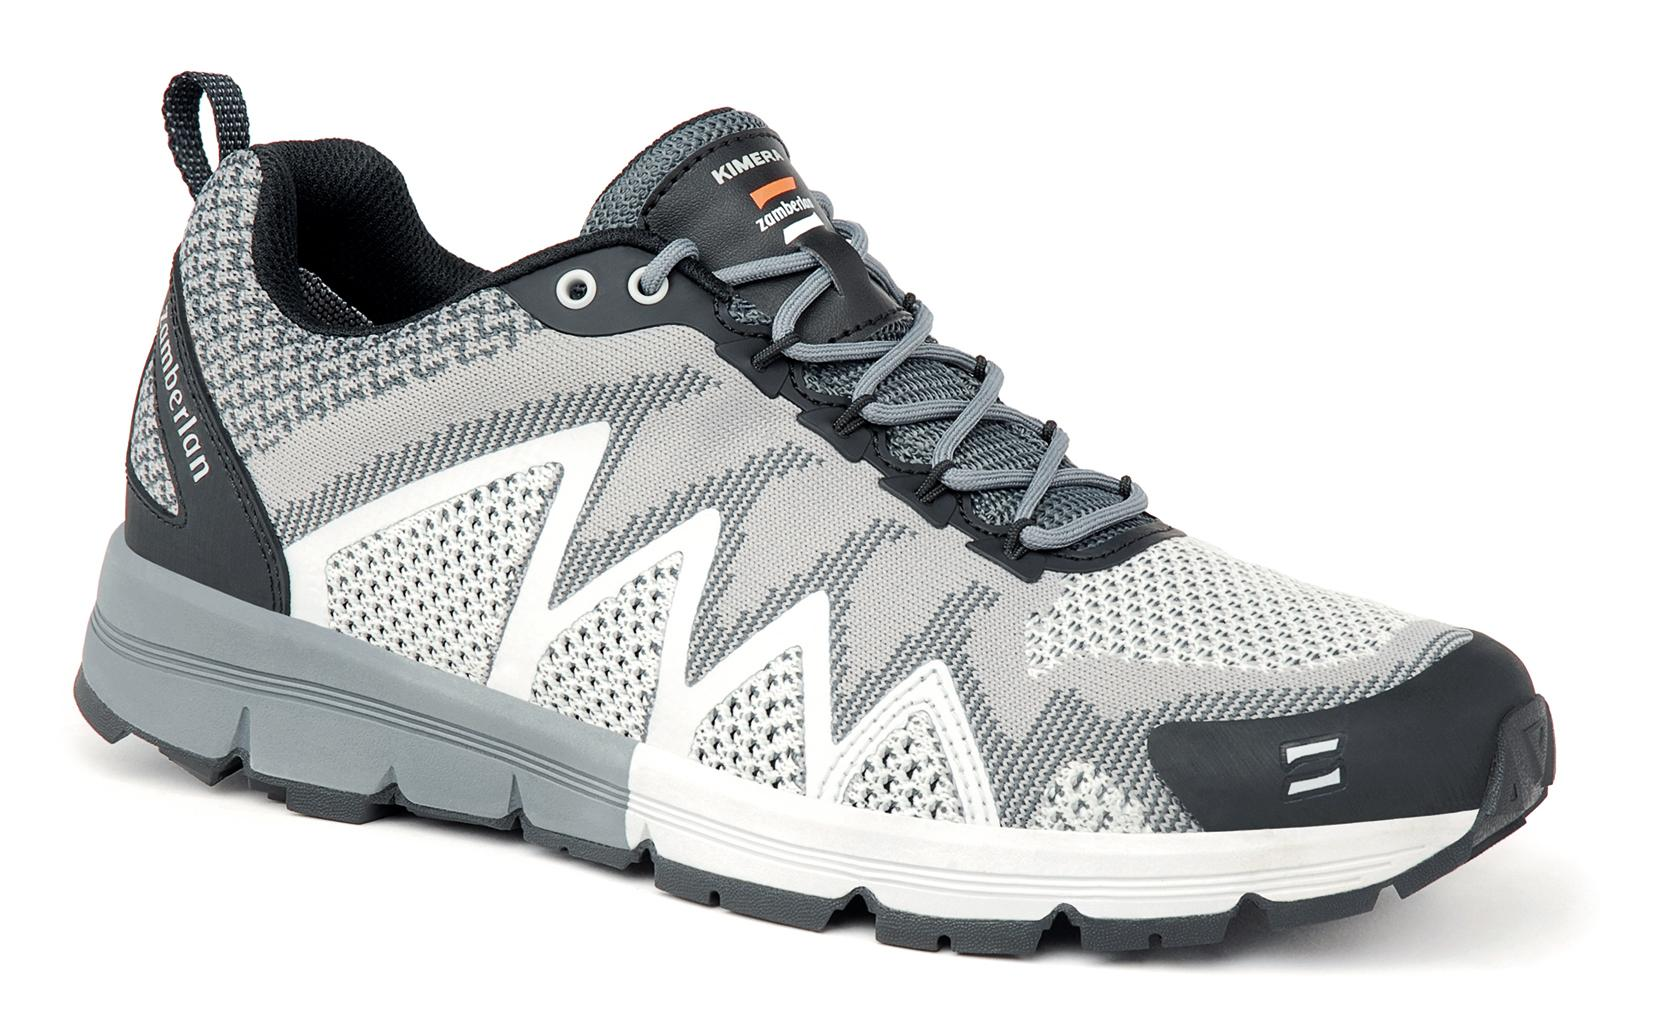 123 KIMERA RR   -   Chaussures  Hiking     -   Grey